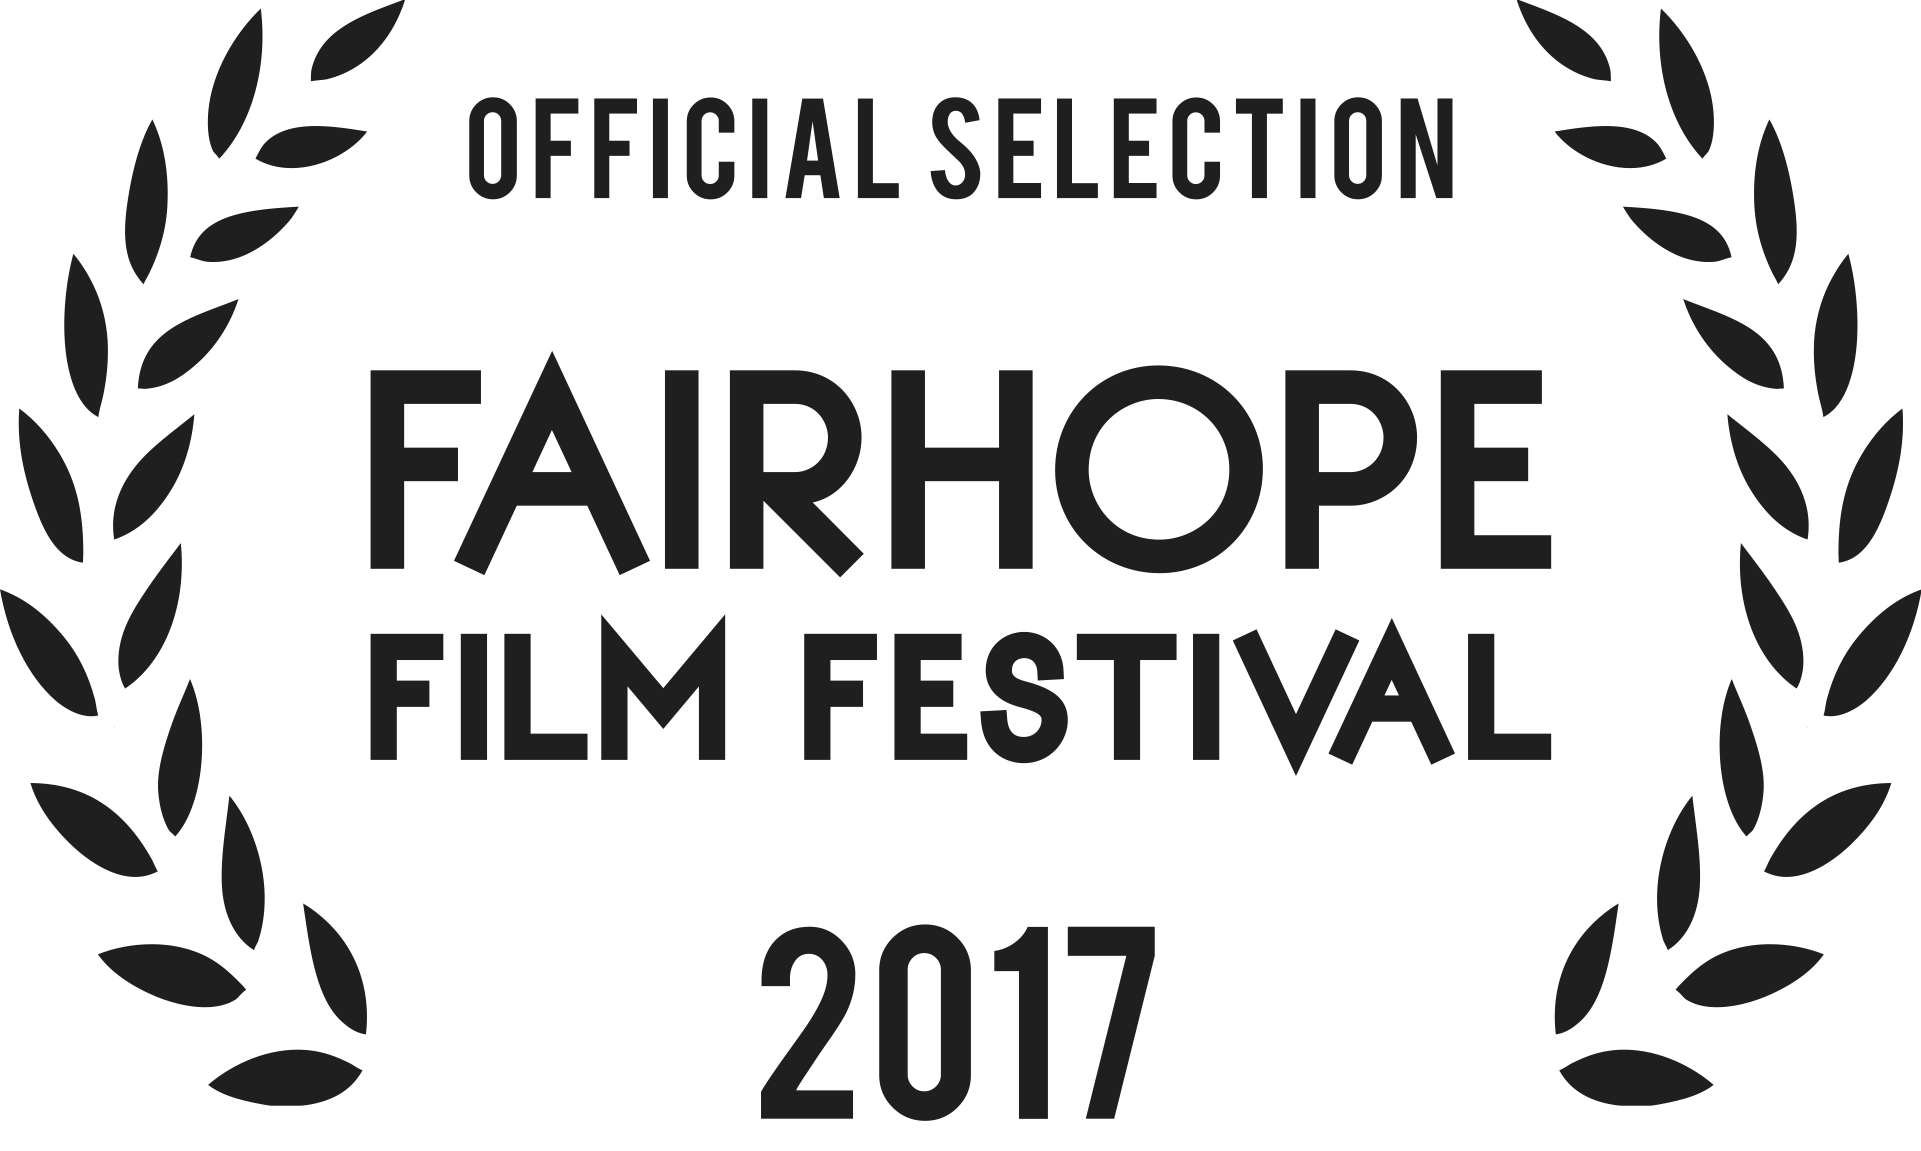 FAIRHOPE FILM FESTIVAL, FAIRHOPE, ALABAMA - Friday, Nov. 10th 2017: 10:30am at Fairhope LibraryQ&A with directors April Hayes and Katia Maguire after the screening.BUY TICKETS HERE